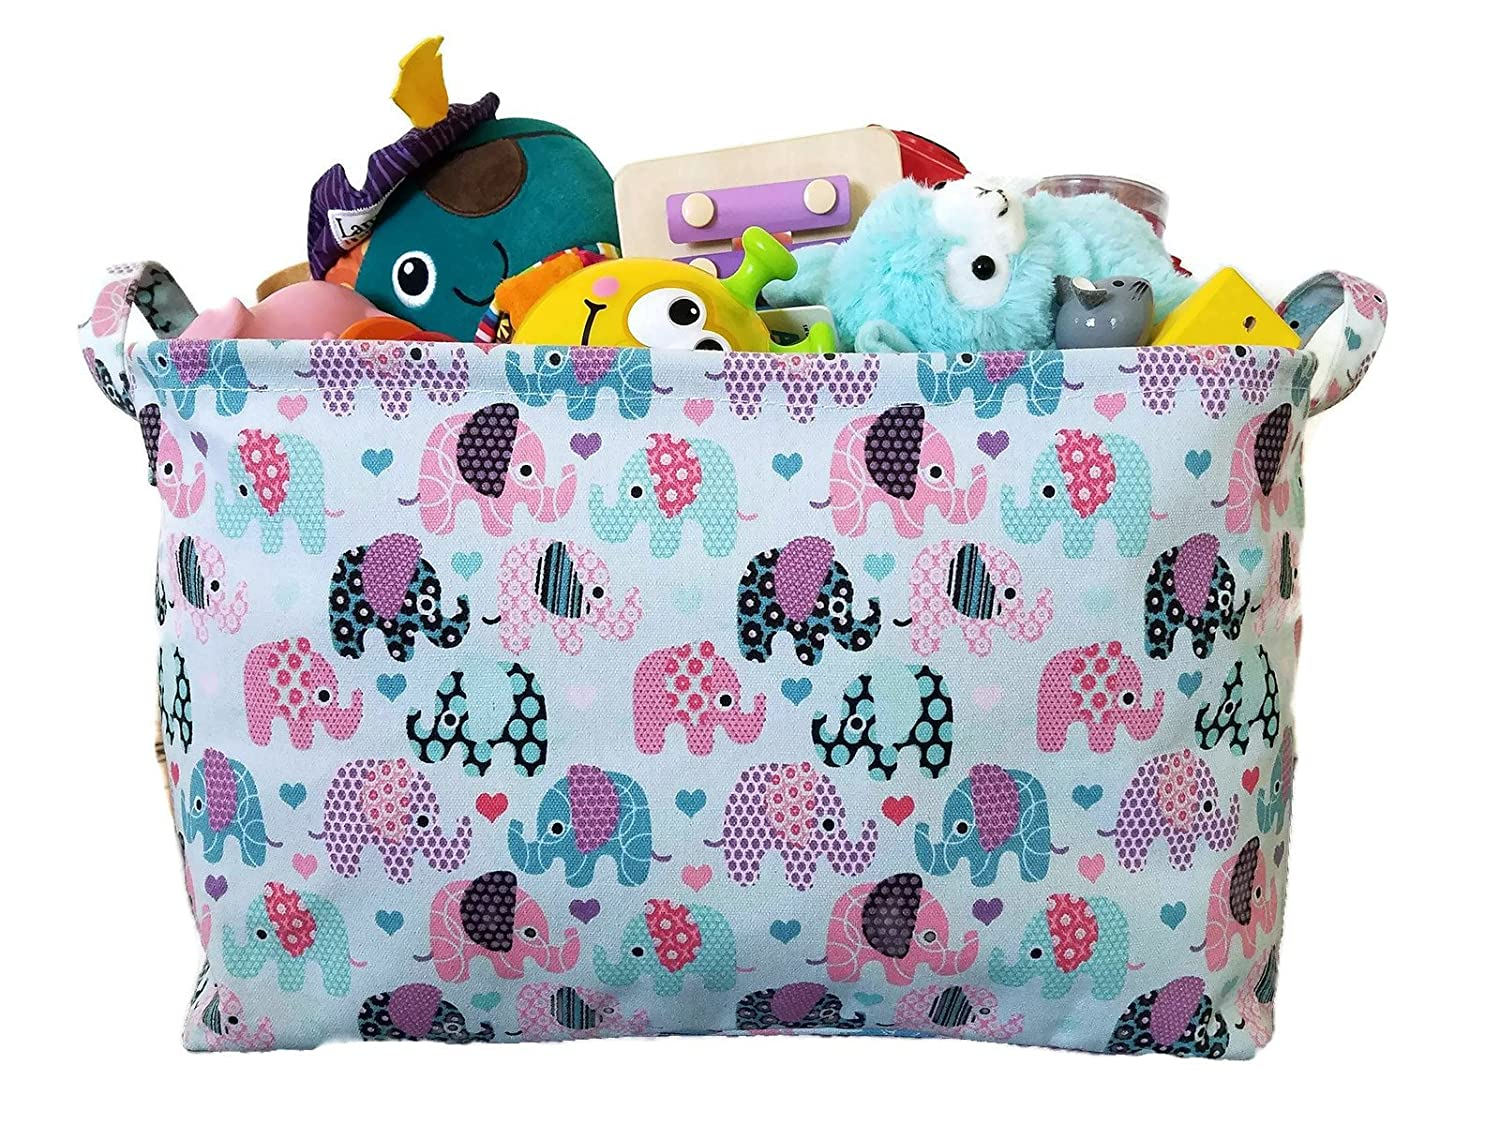 Amazon.com : Toy Storage Basket And Canvas Box Organizer With Elephant  Prints For Kids Toys And Nursery Storage, Baby Hamper, Book Bag, Laundry  Clothing Bin ...